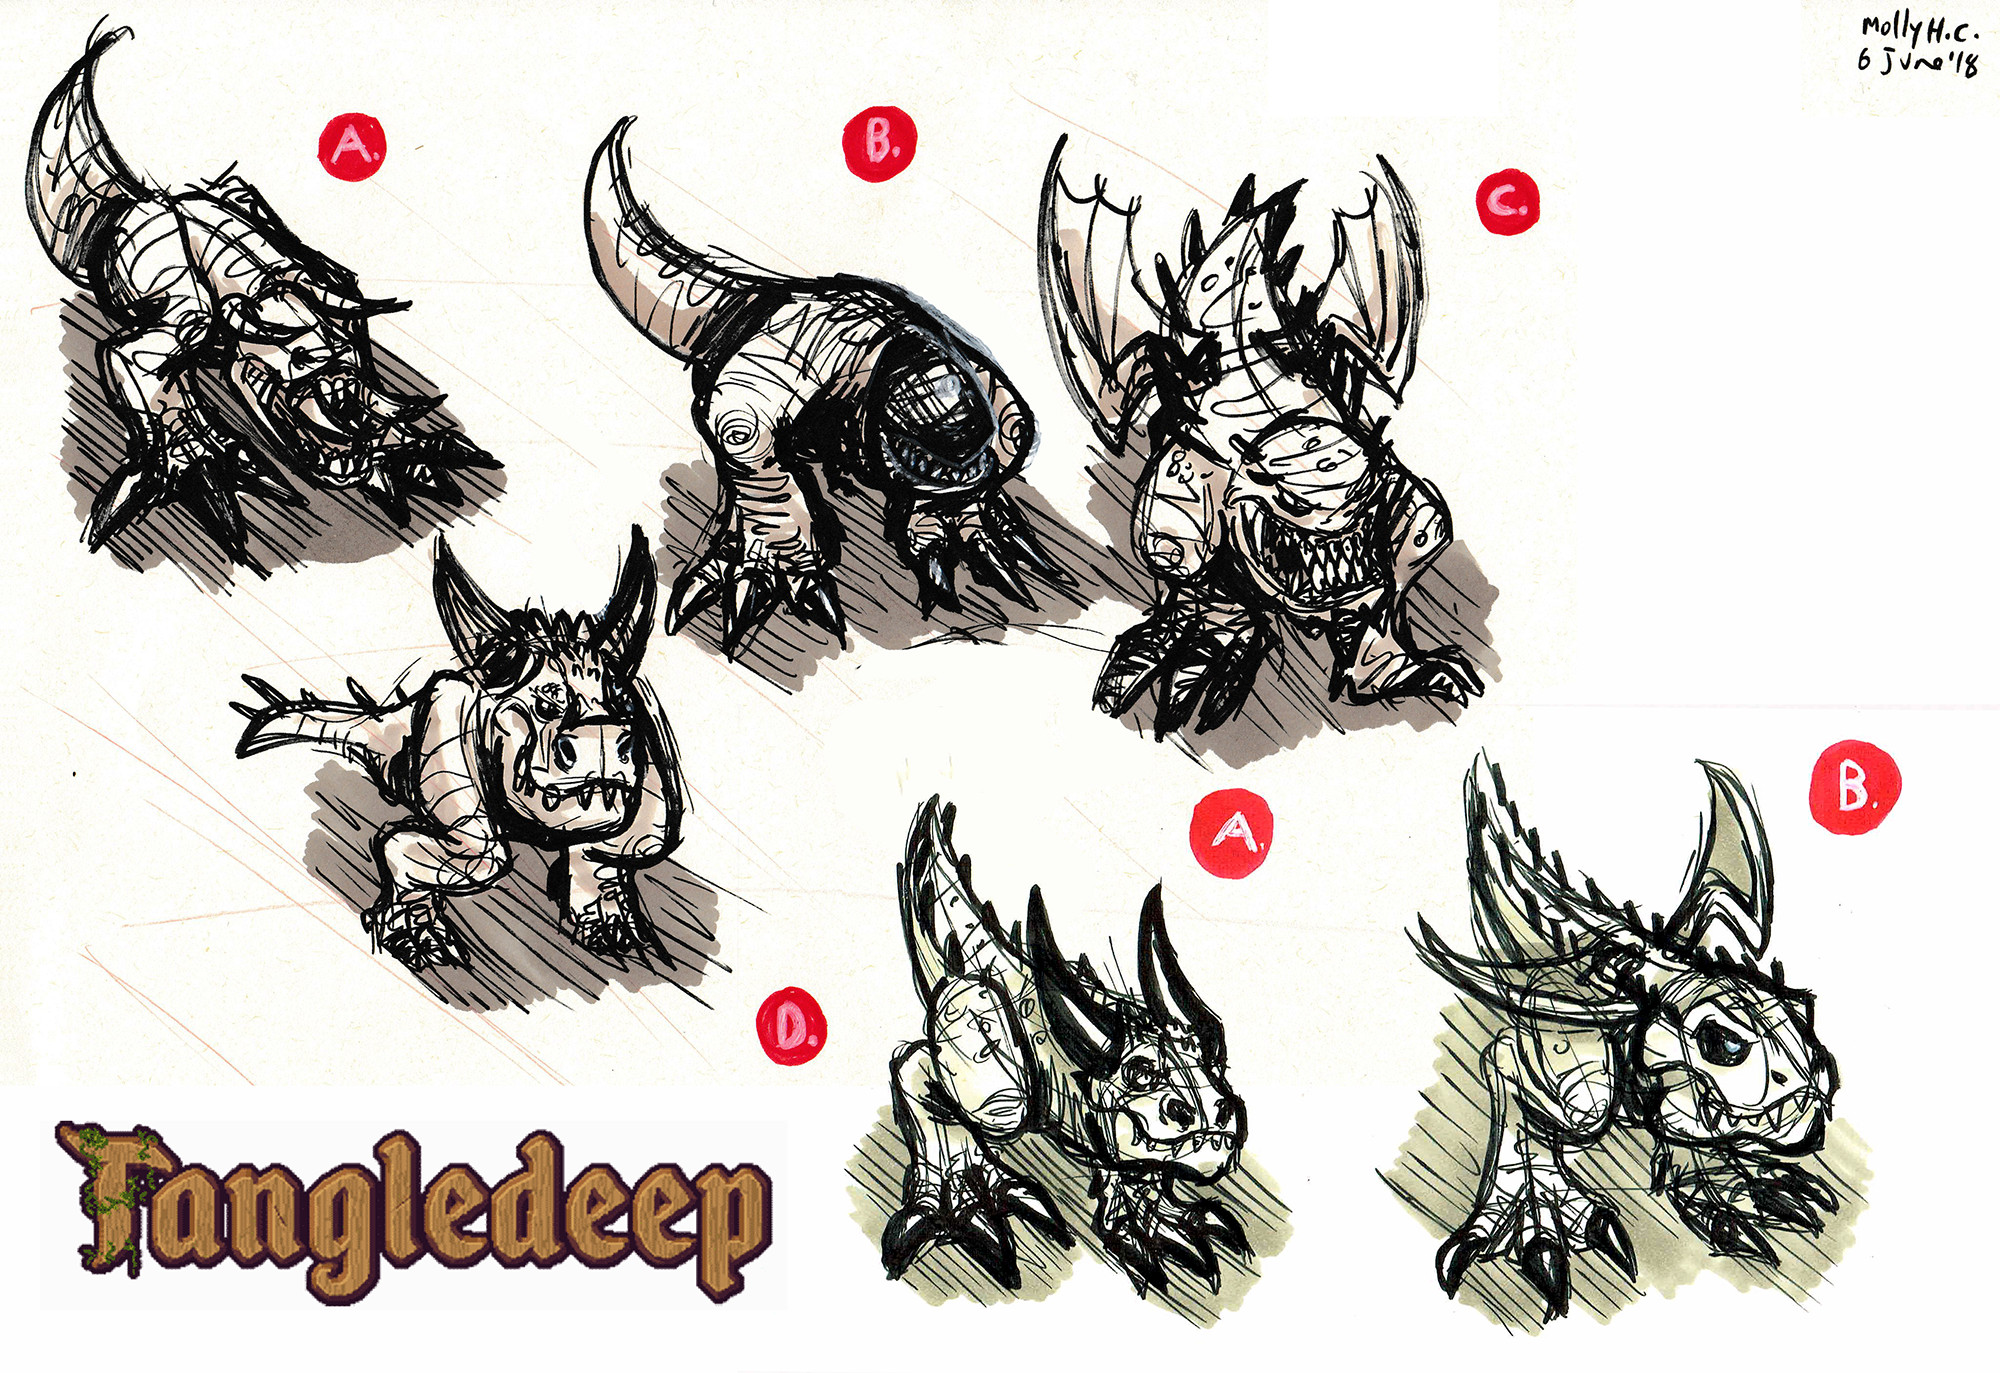 """Creature design for RPG """"Tangledeep"""". Commissioned by Impact Gameworks (http://tangledeep.com/)  © 2018"""